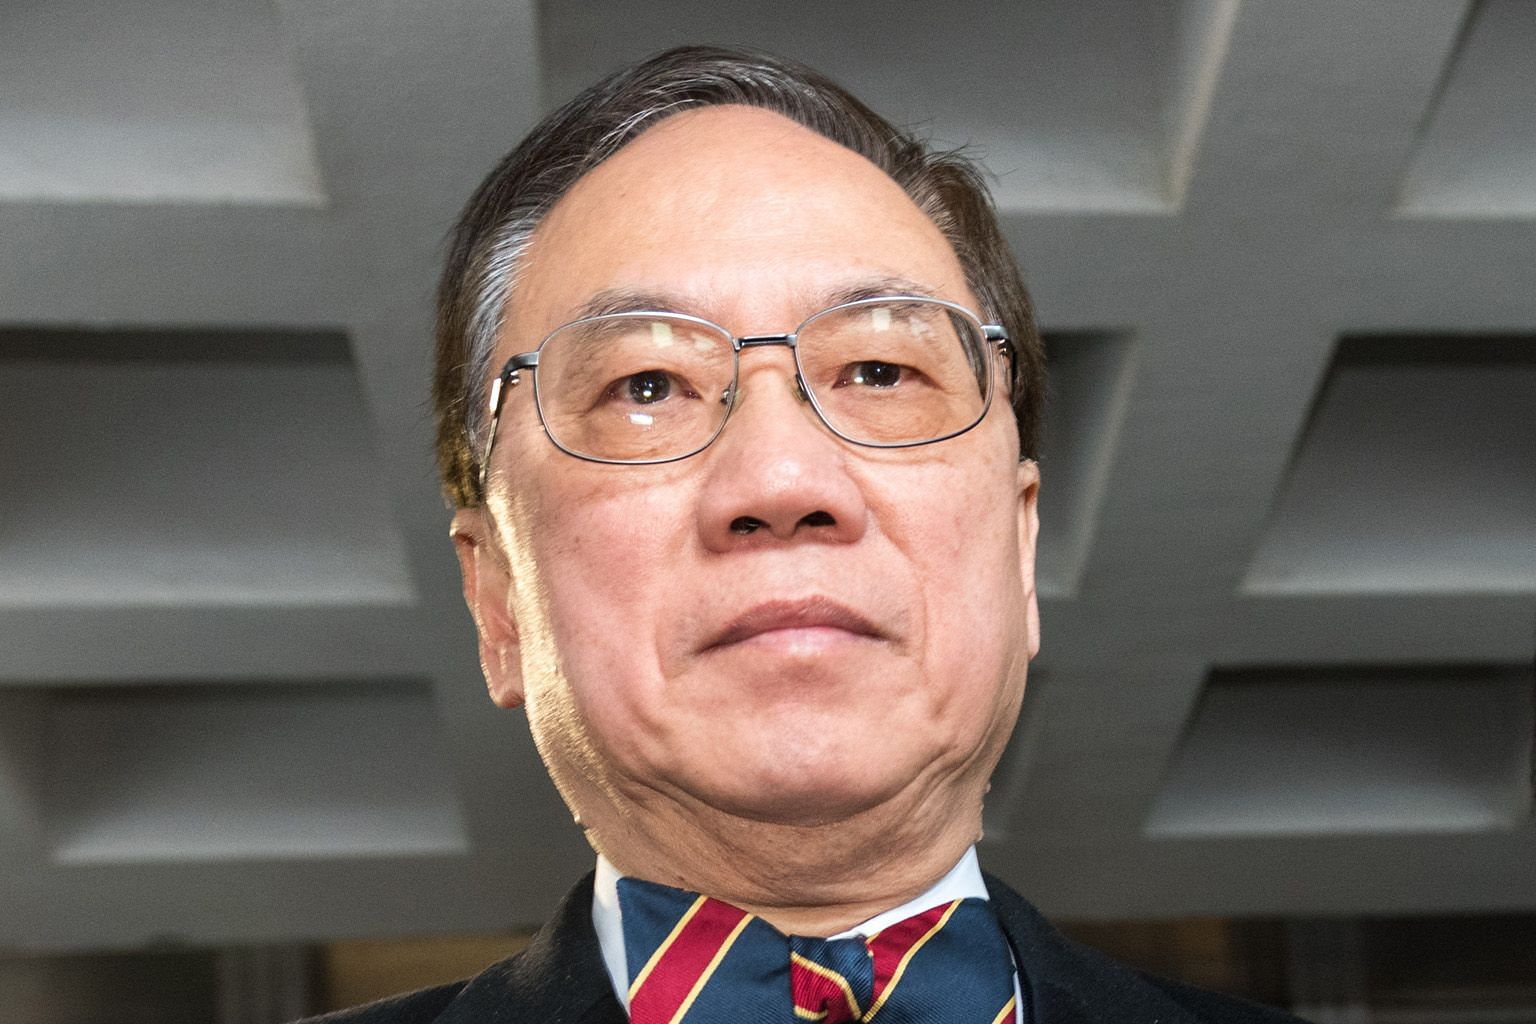 Mr Donald Tsang, who was Hong Kong's leader from 2005 to 2012, was convicted of misconduct in office.